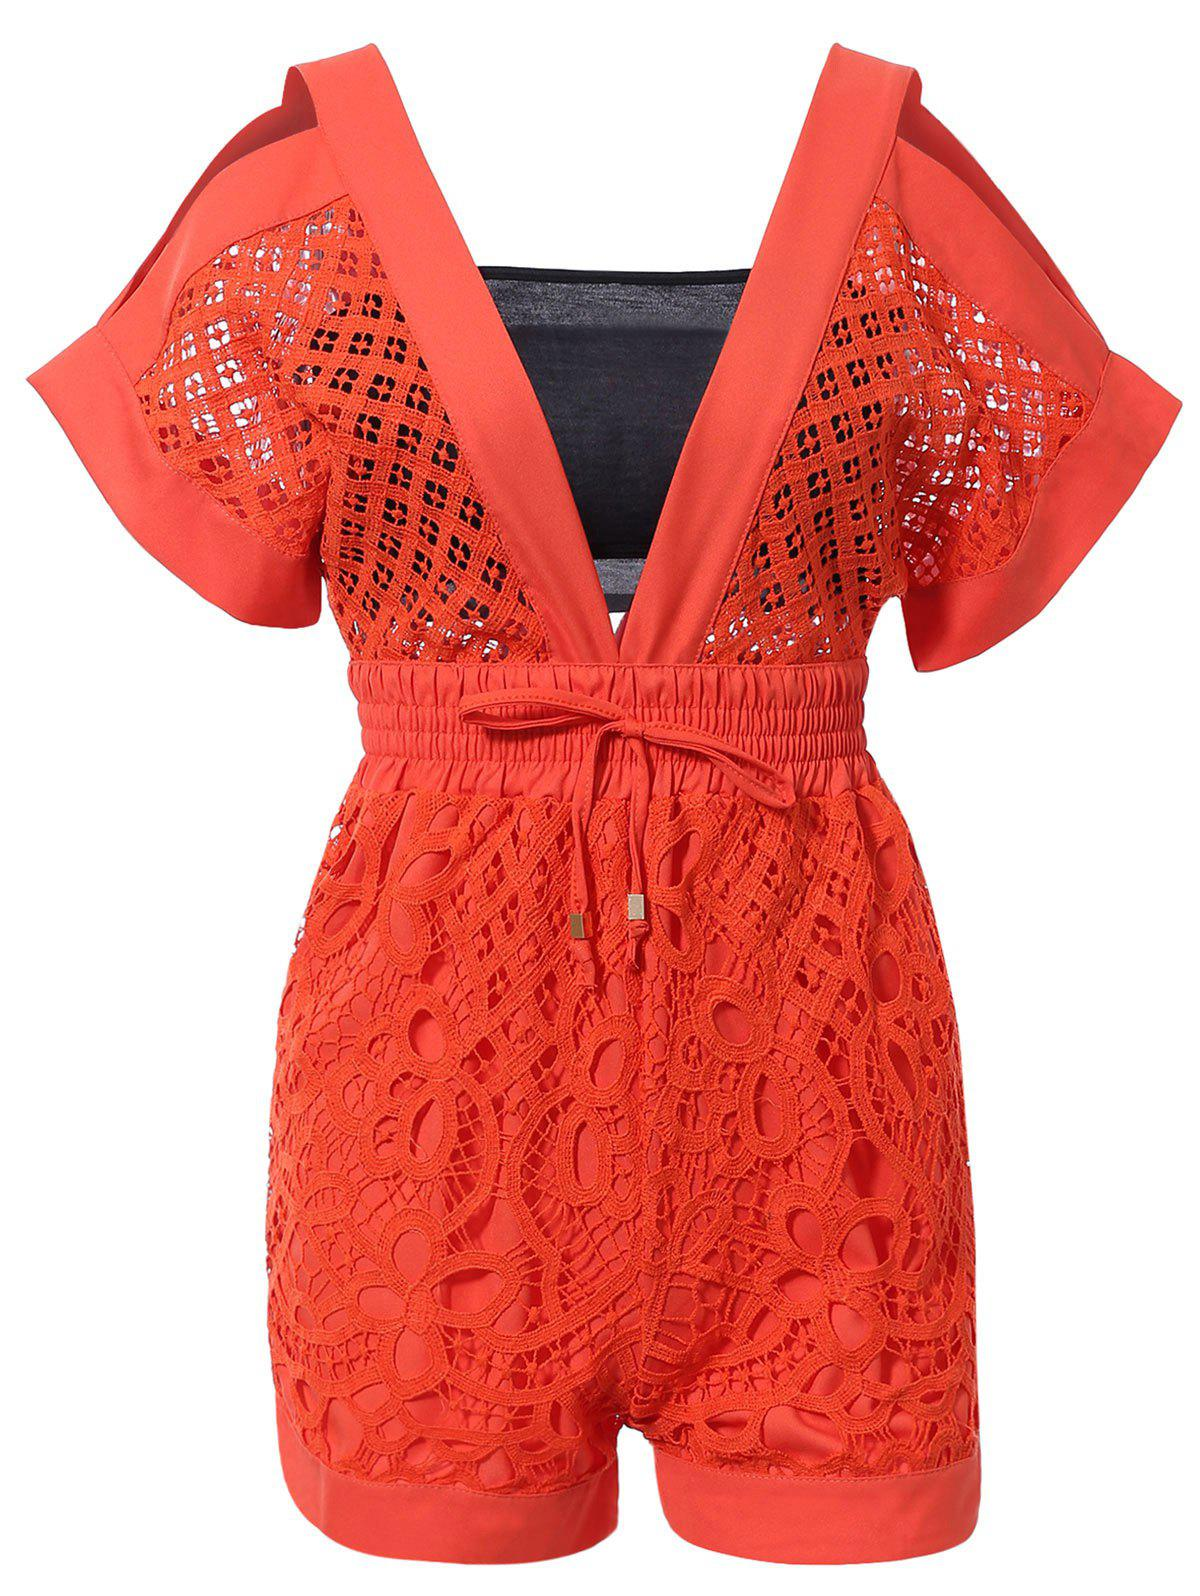 Chic Orange Lace Romper + Tube Top For Women